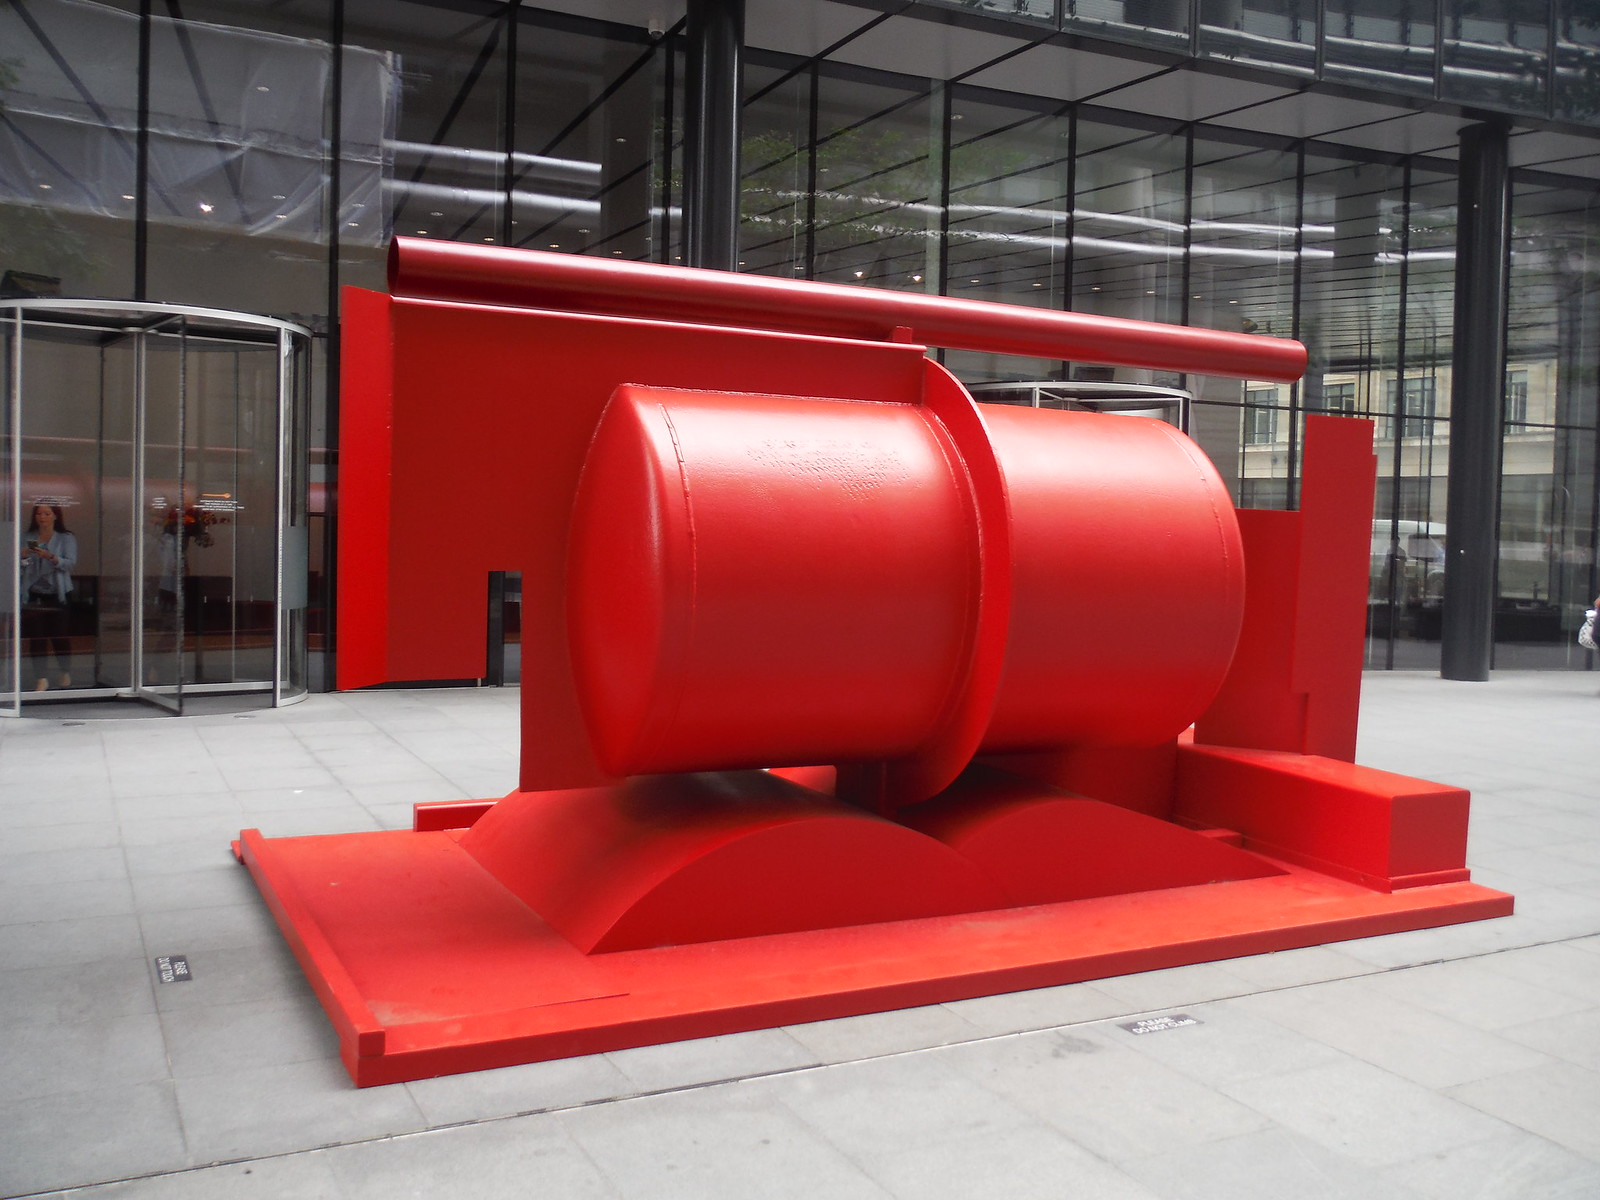 Anthony Caro - Aurora SWC Walk Short 24 - Sculpture in the City